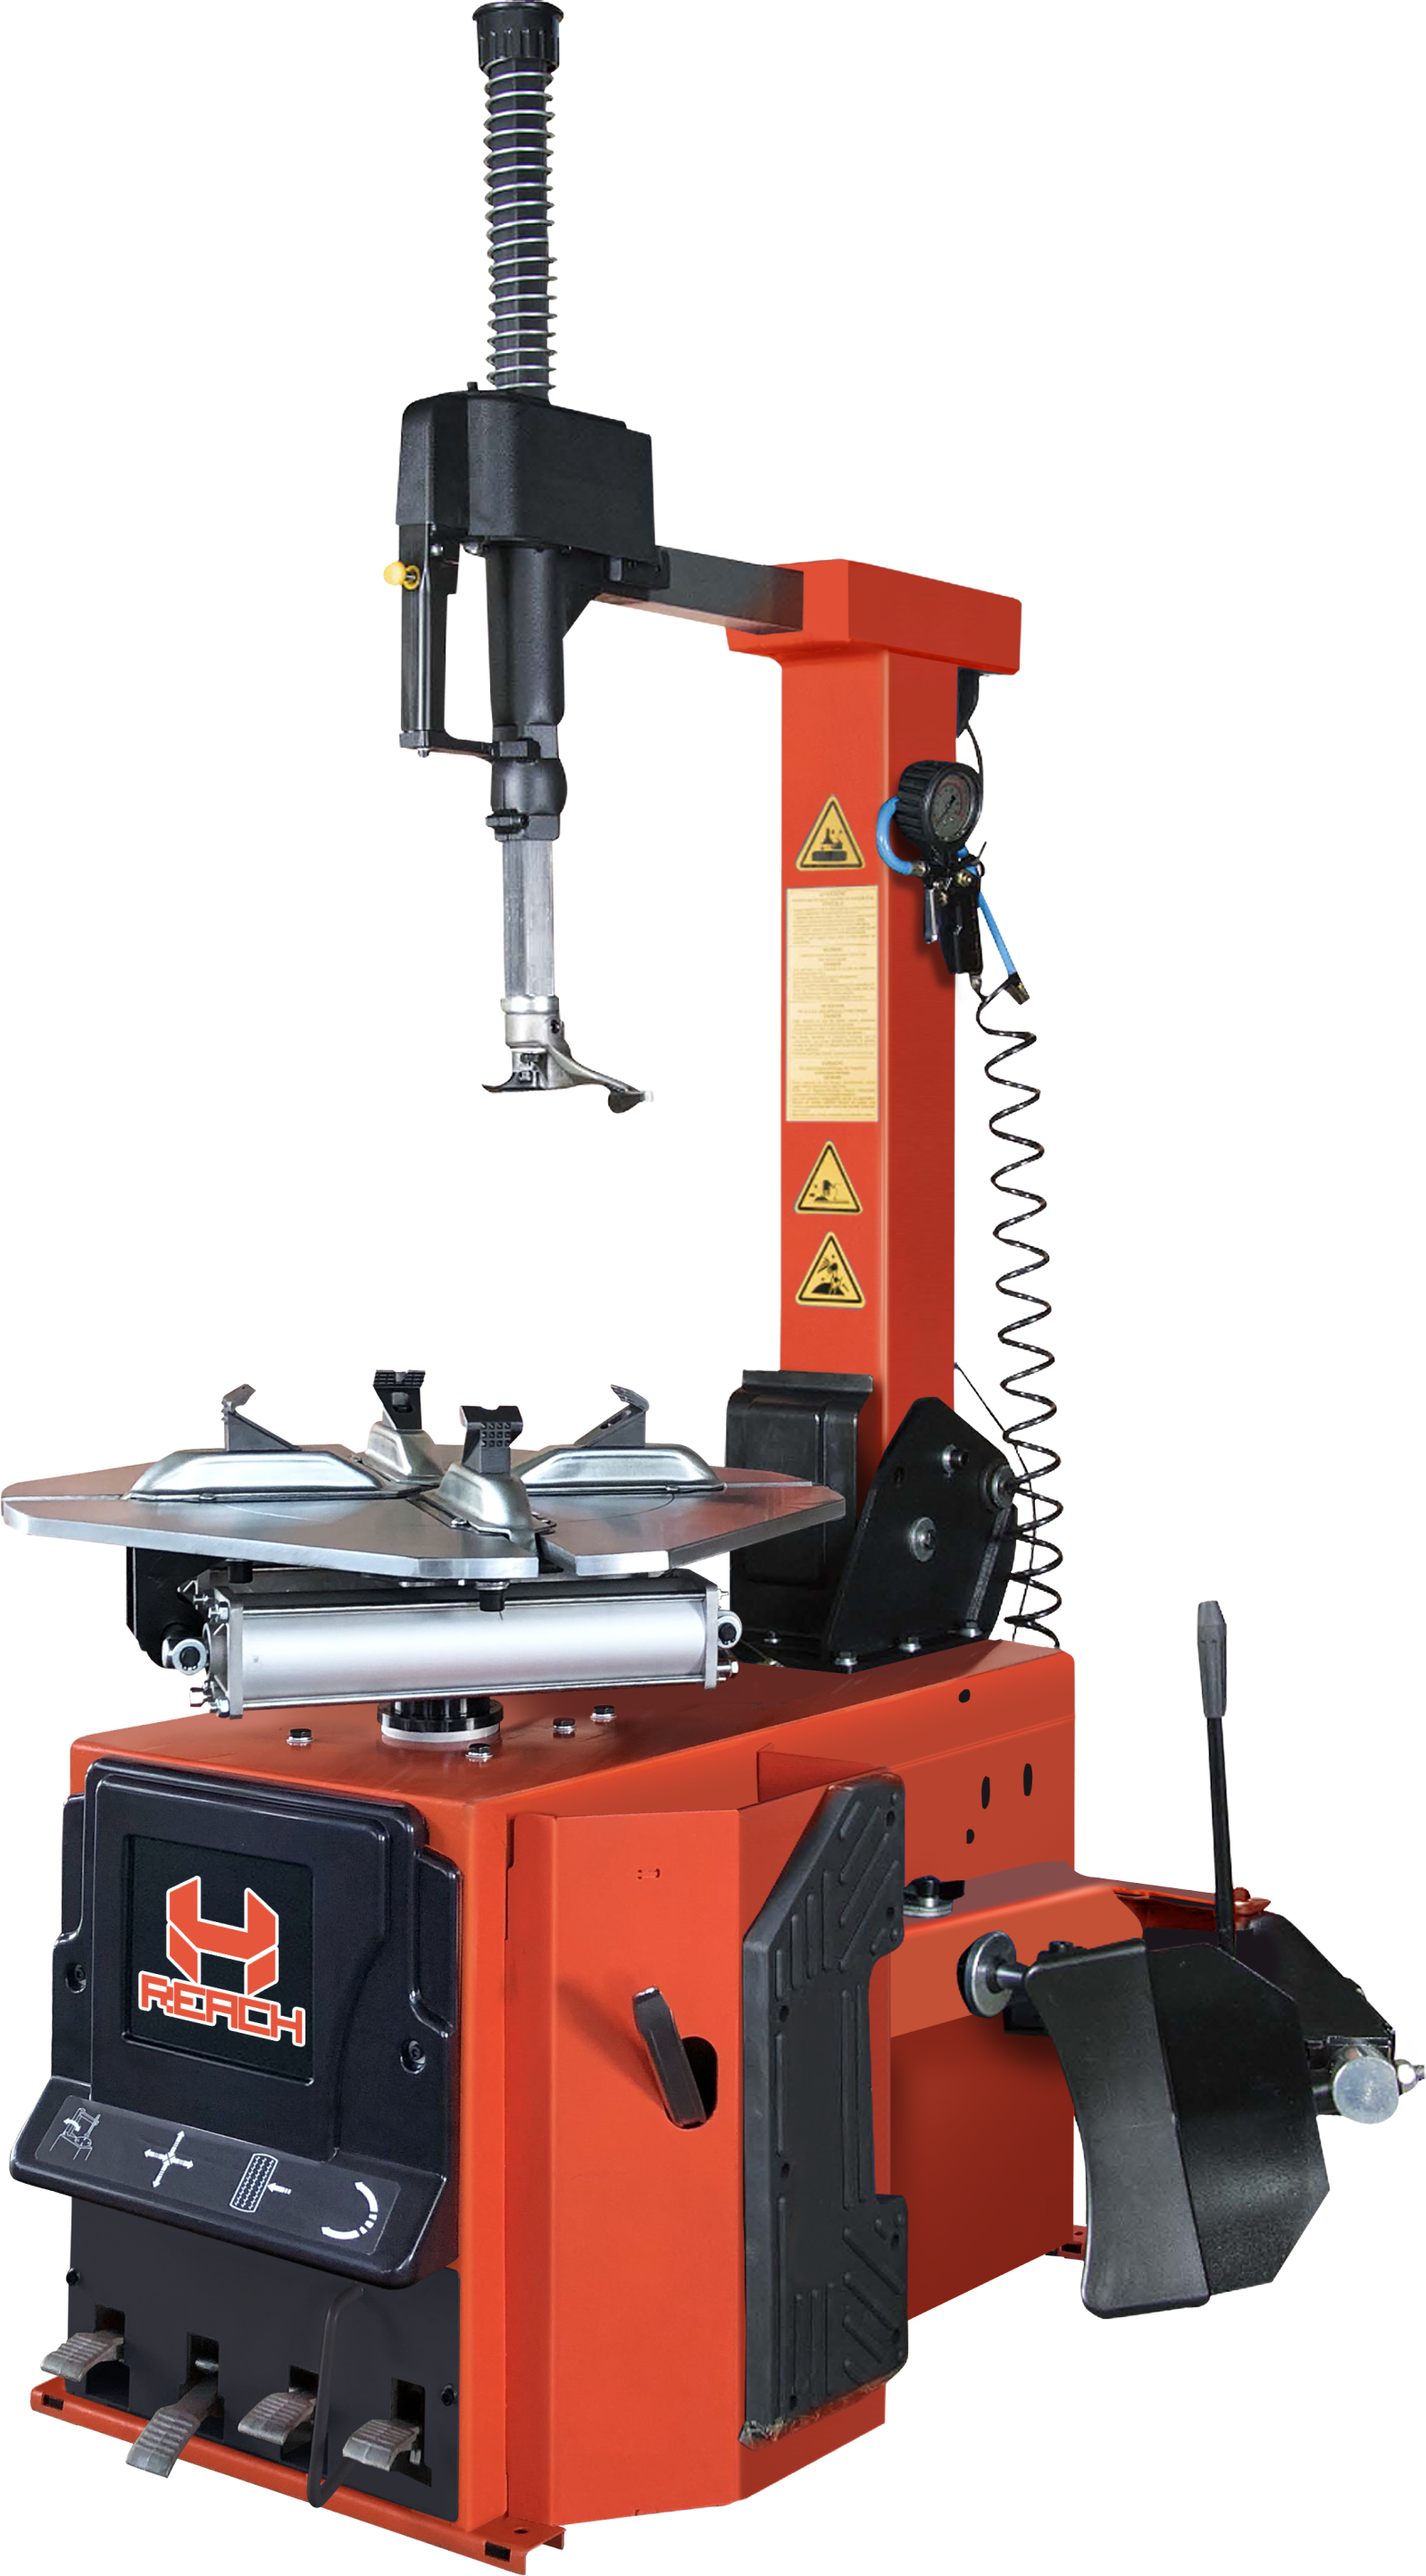 RH-850 Tyre Changer Machine Car Tire Changer Featured Image